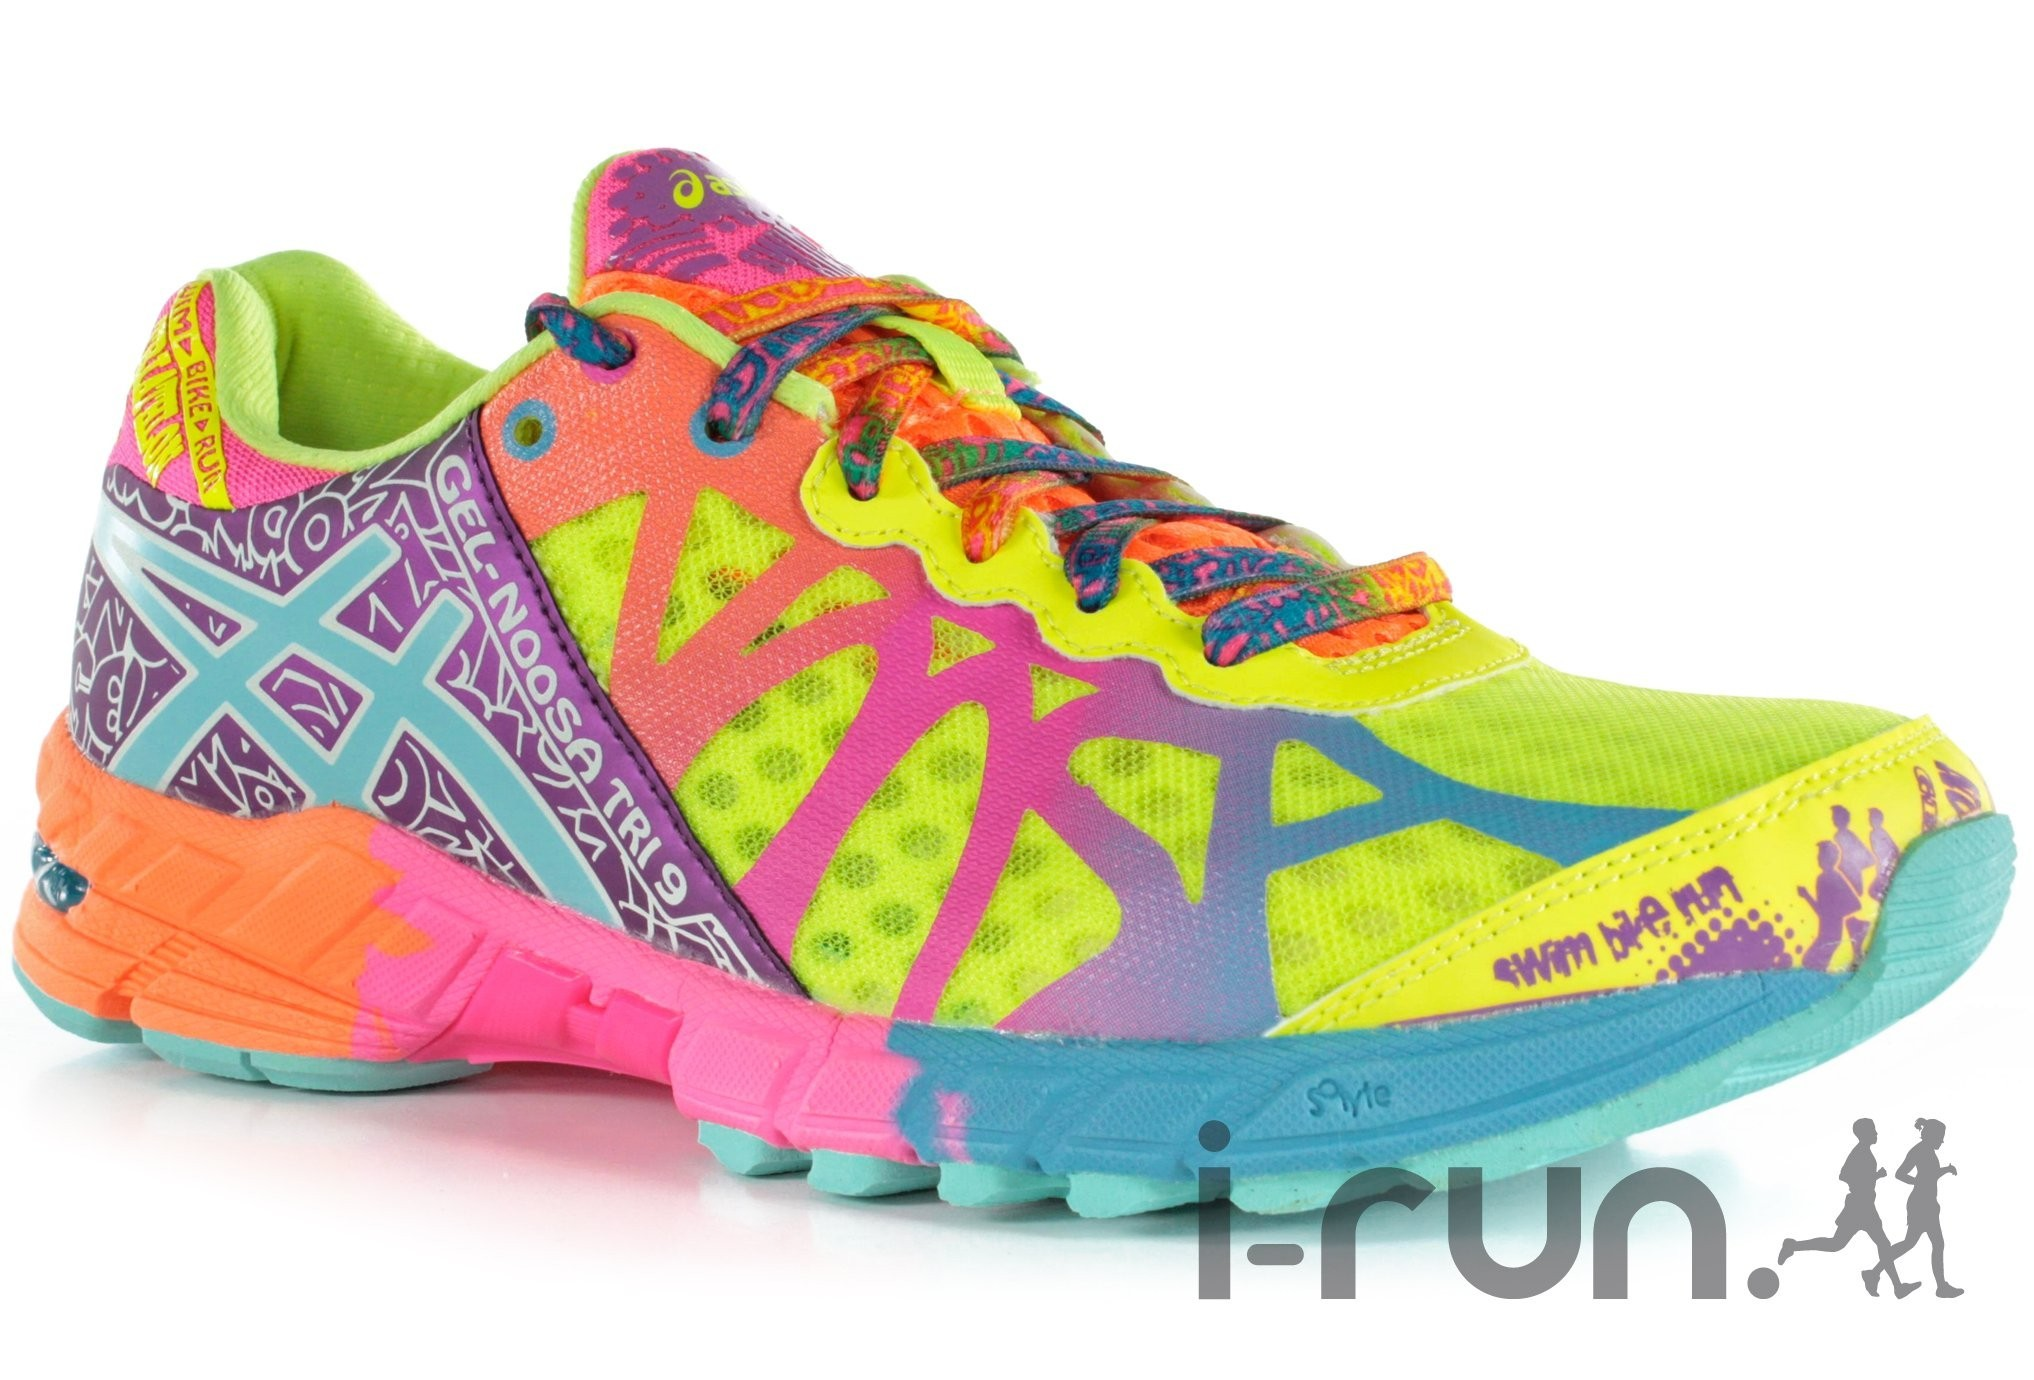 Asics Chaussure Pied A Asics Chaussure Course Course Pied Chaussure Course A YIHWED29